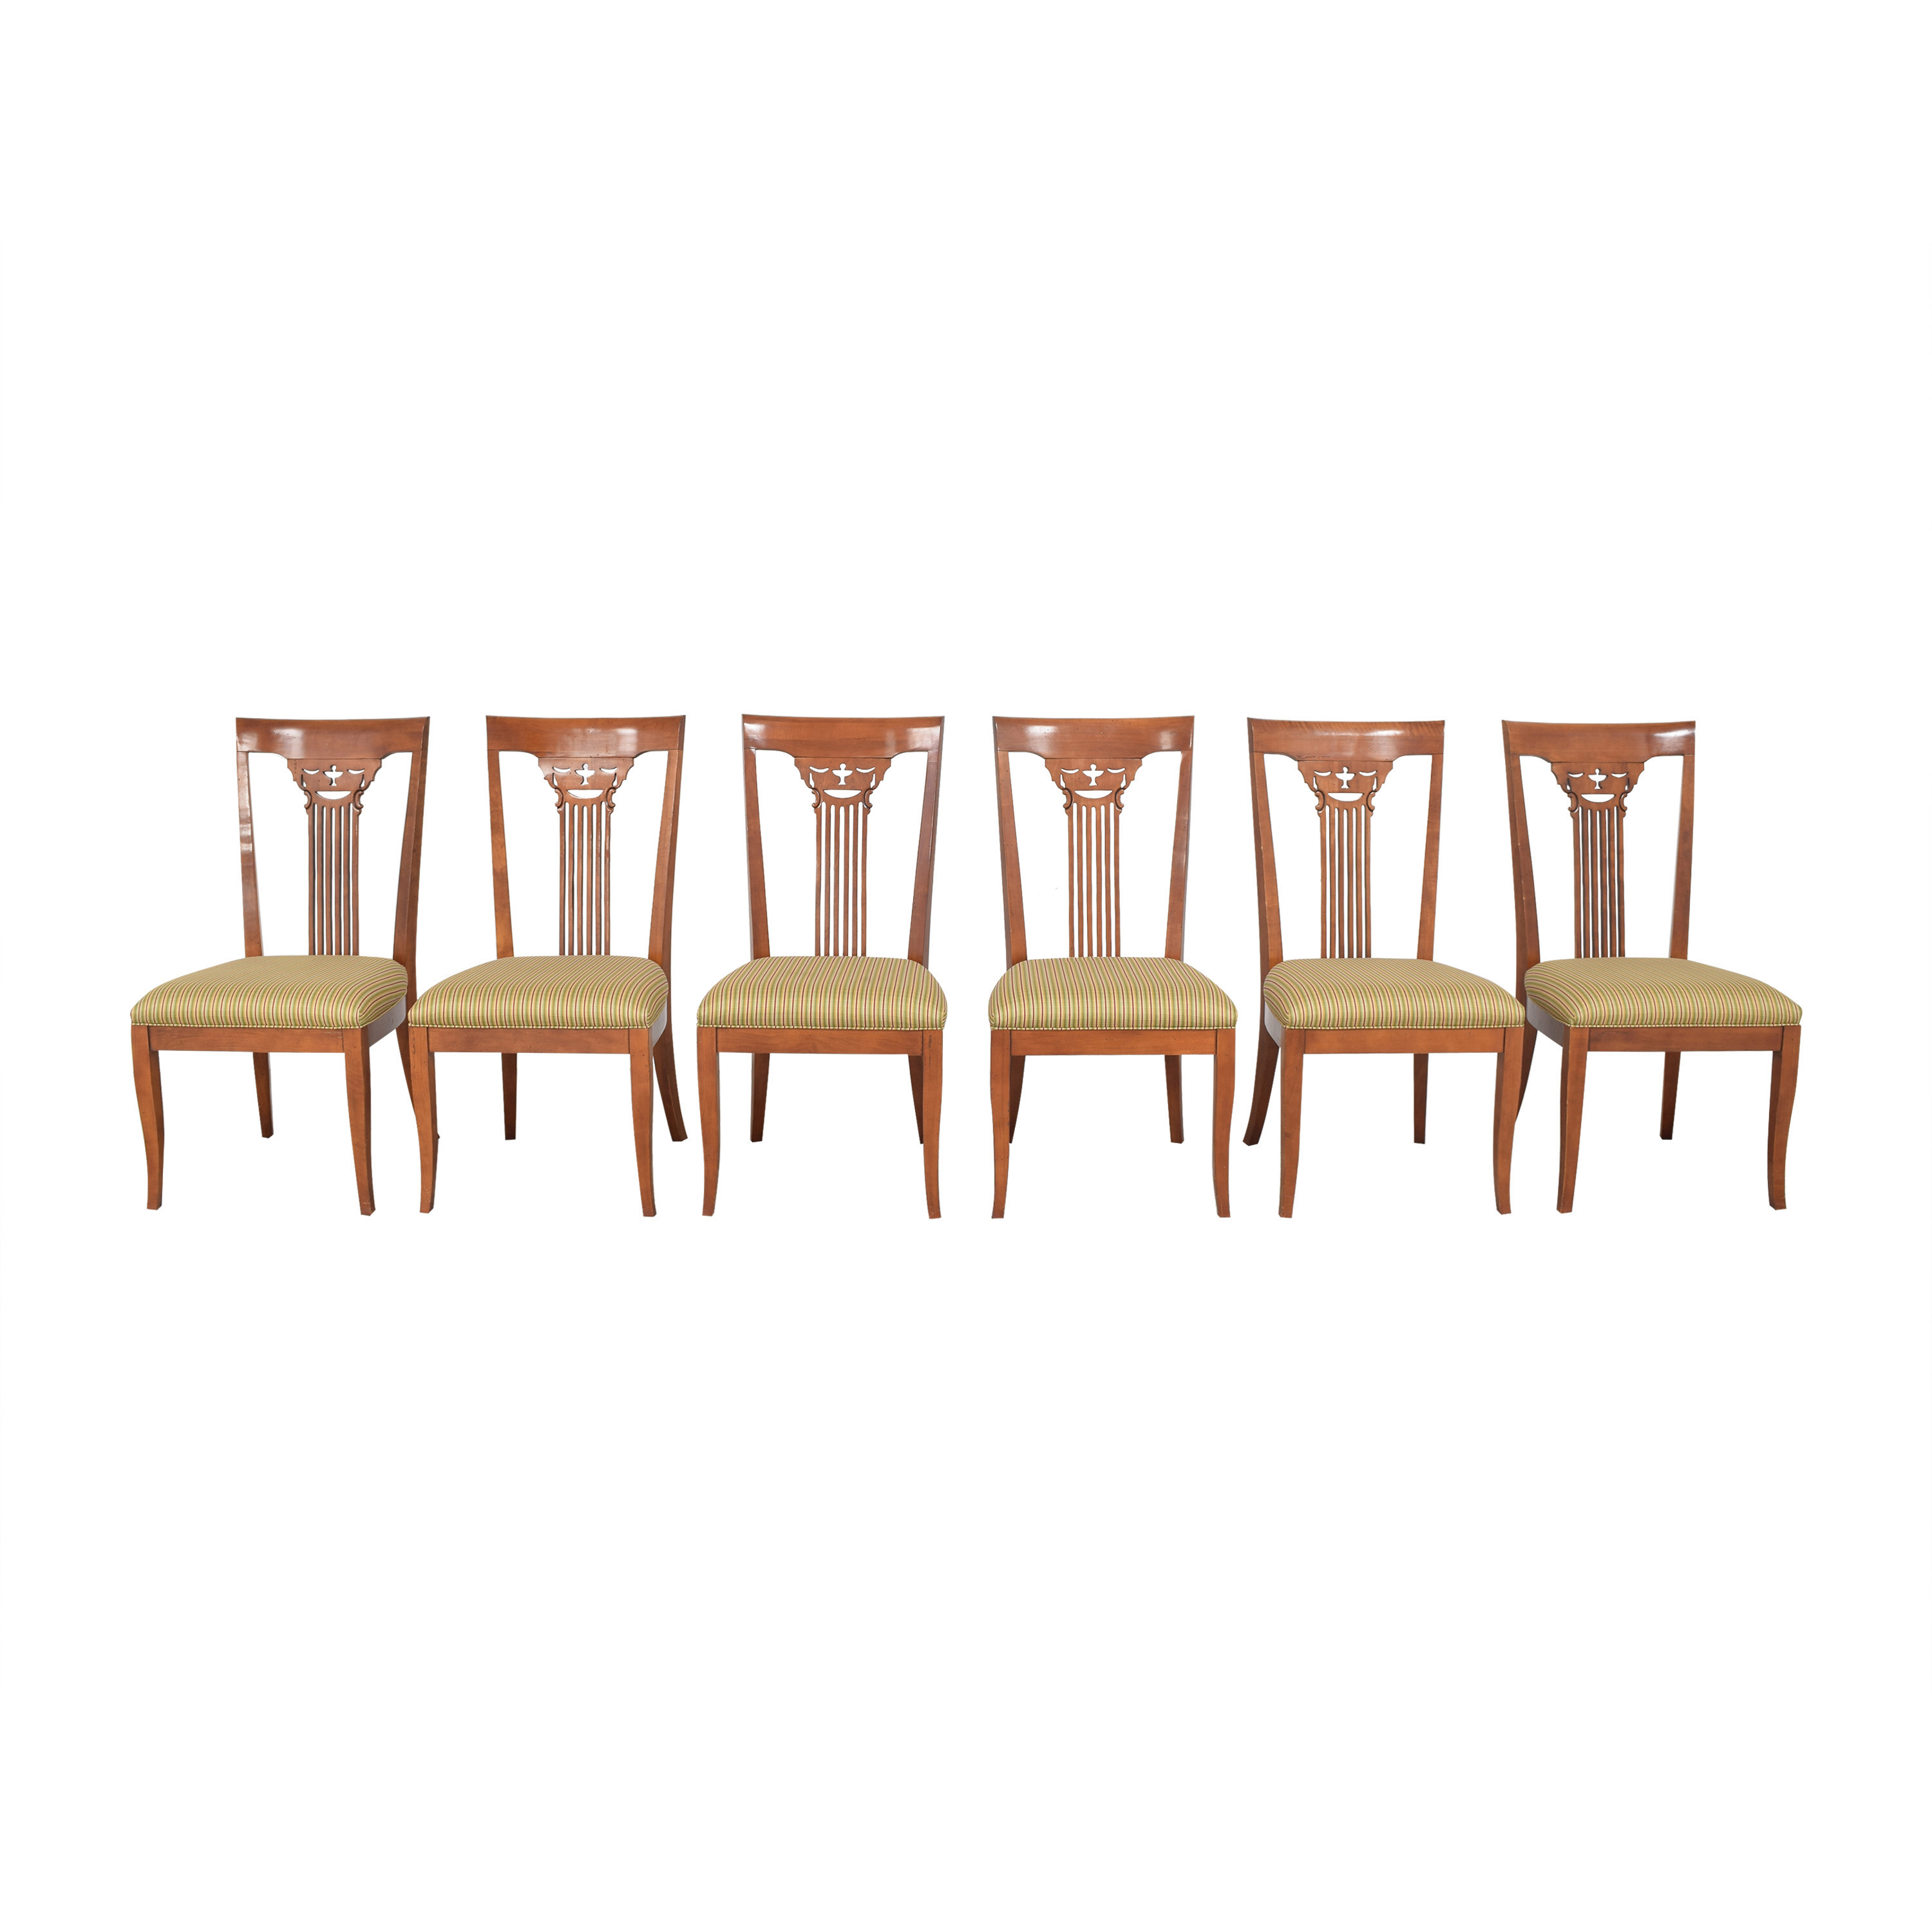 Harden Dining Side Chairs / Chairs